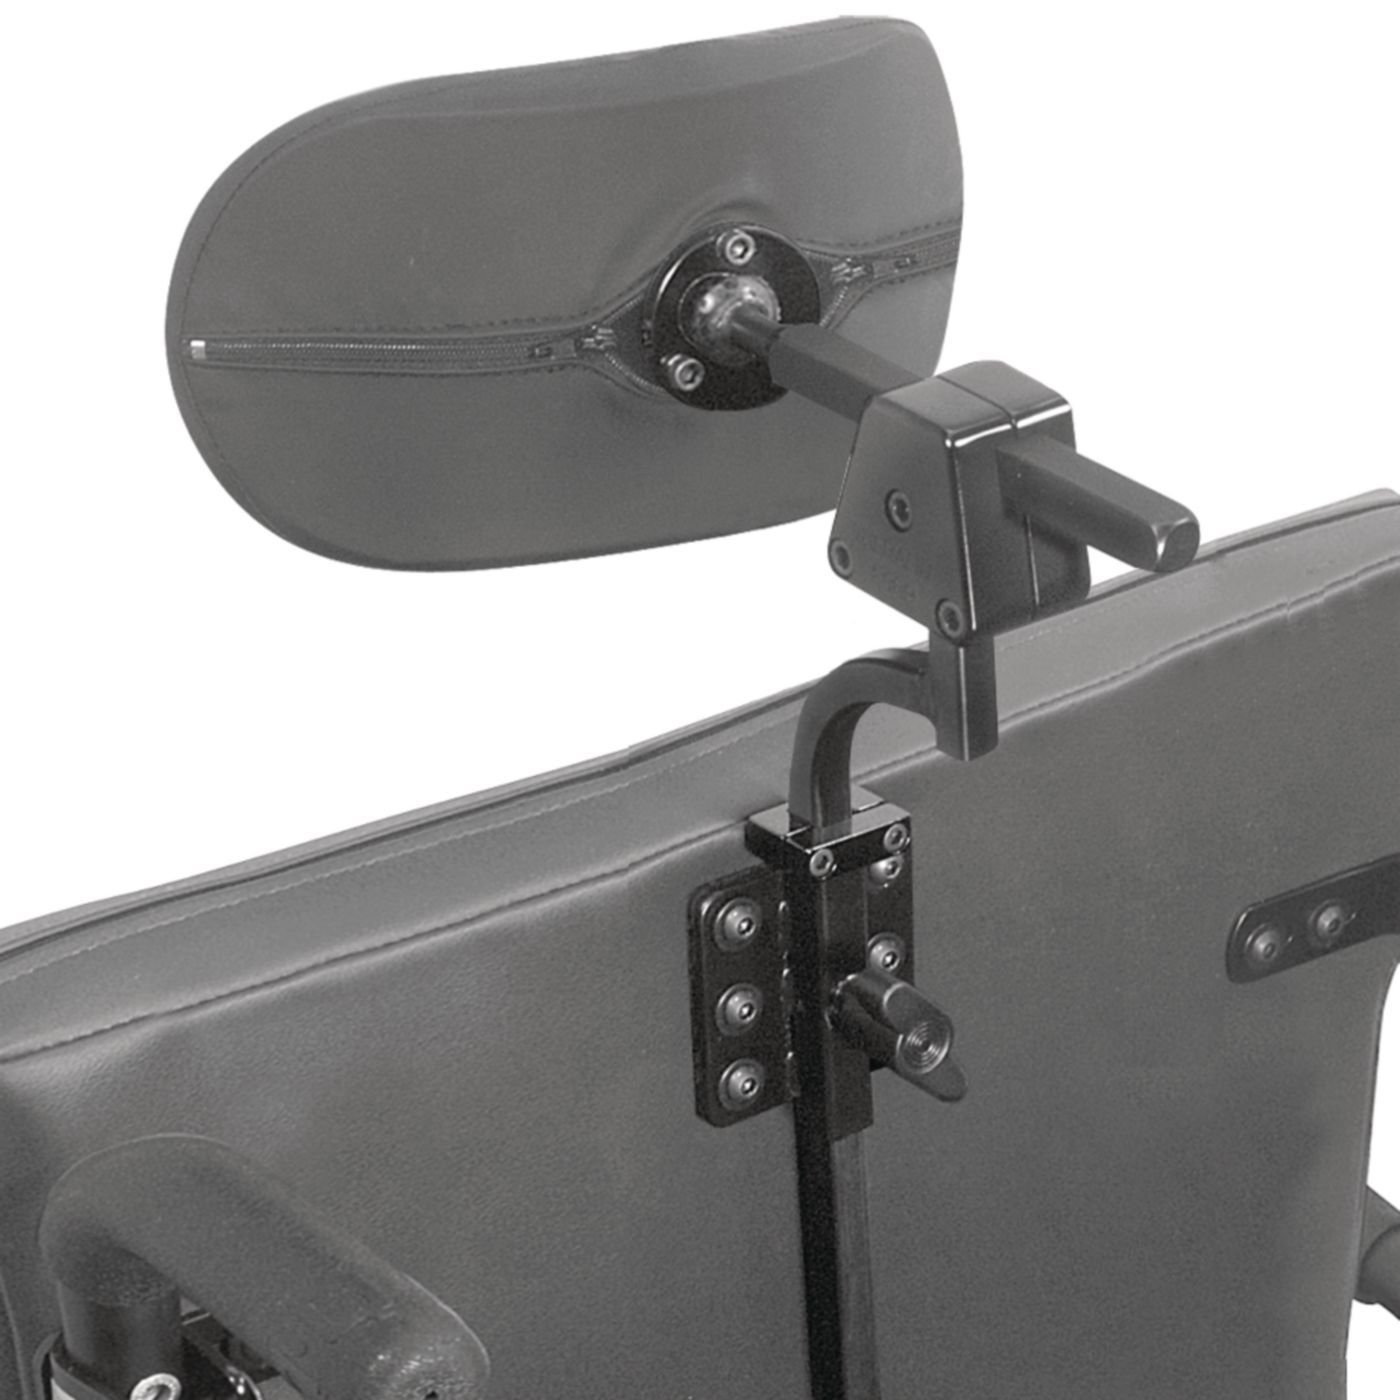 Therafin Multi-Axis Offset Headrest Assembly Kit